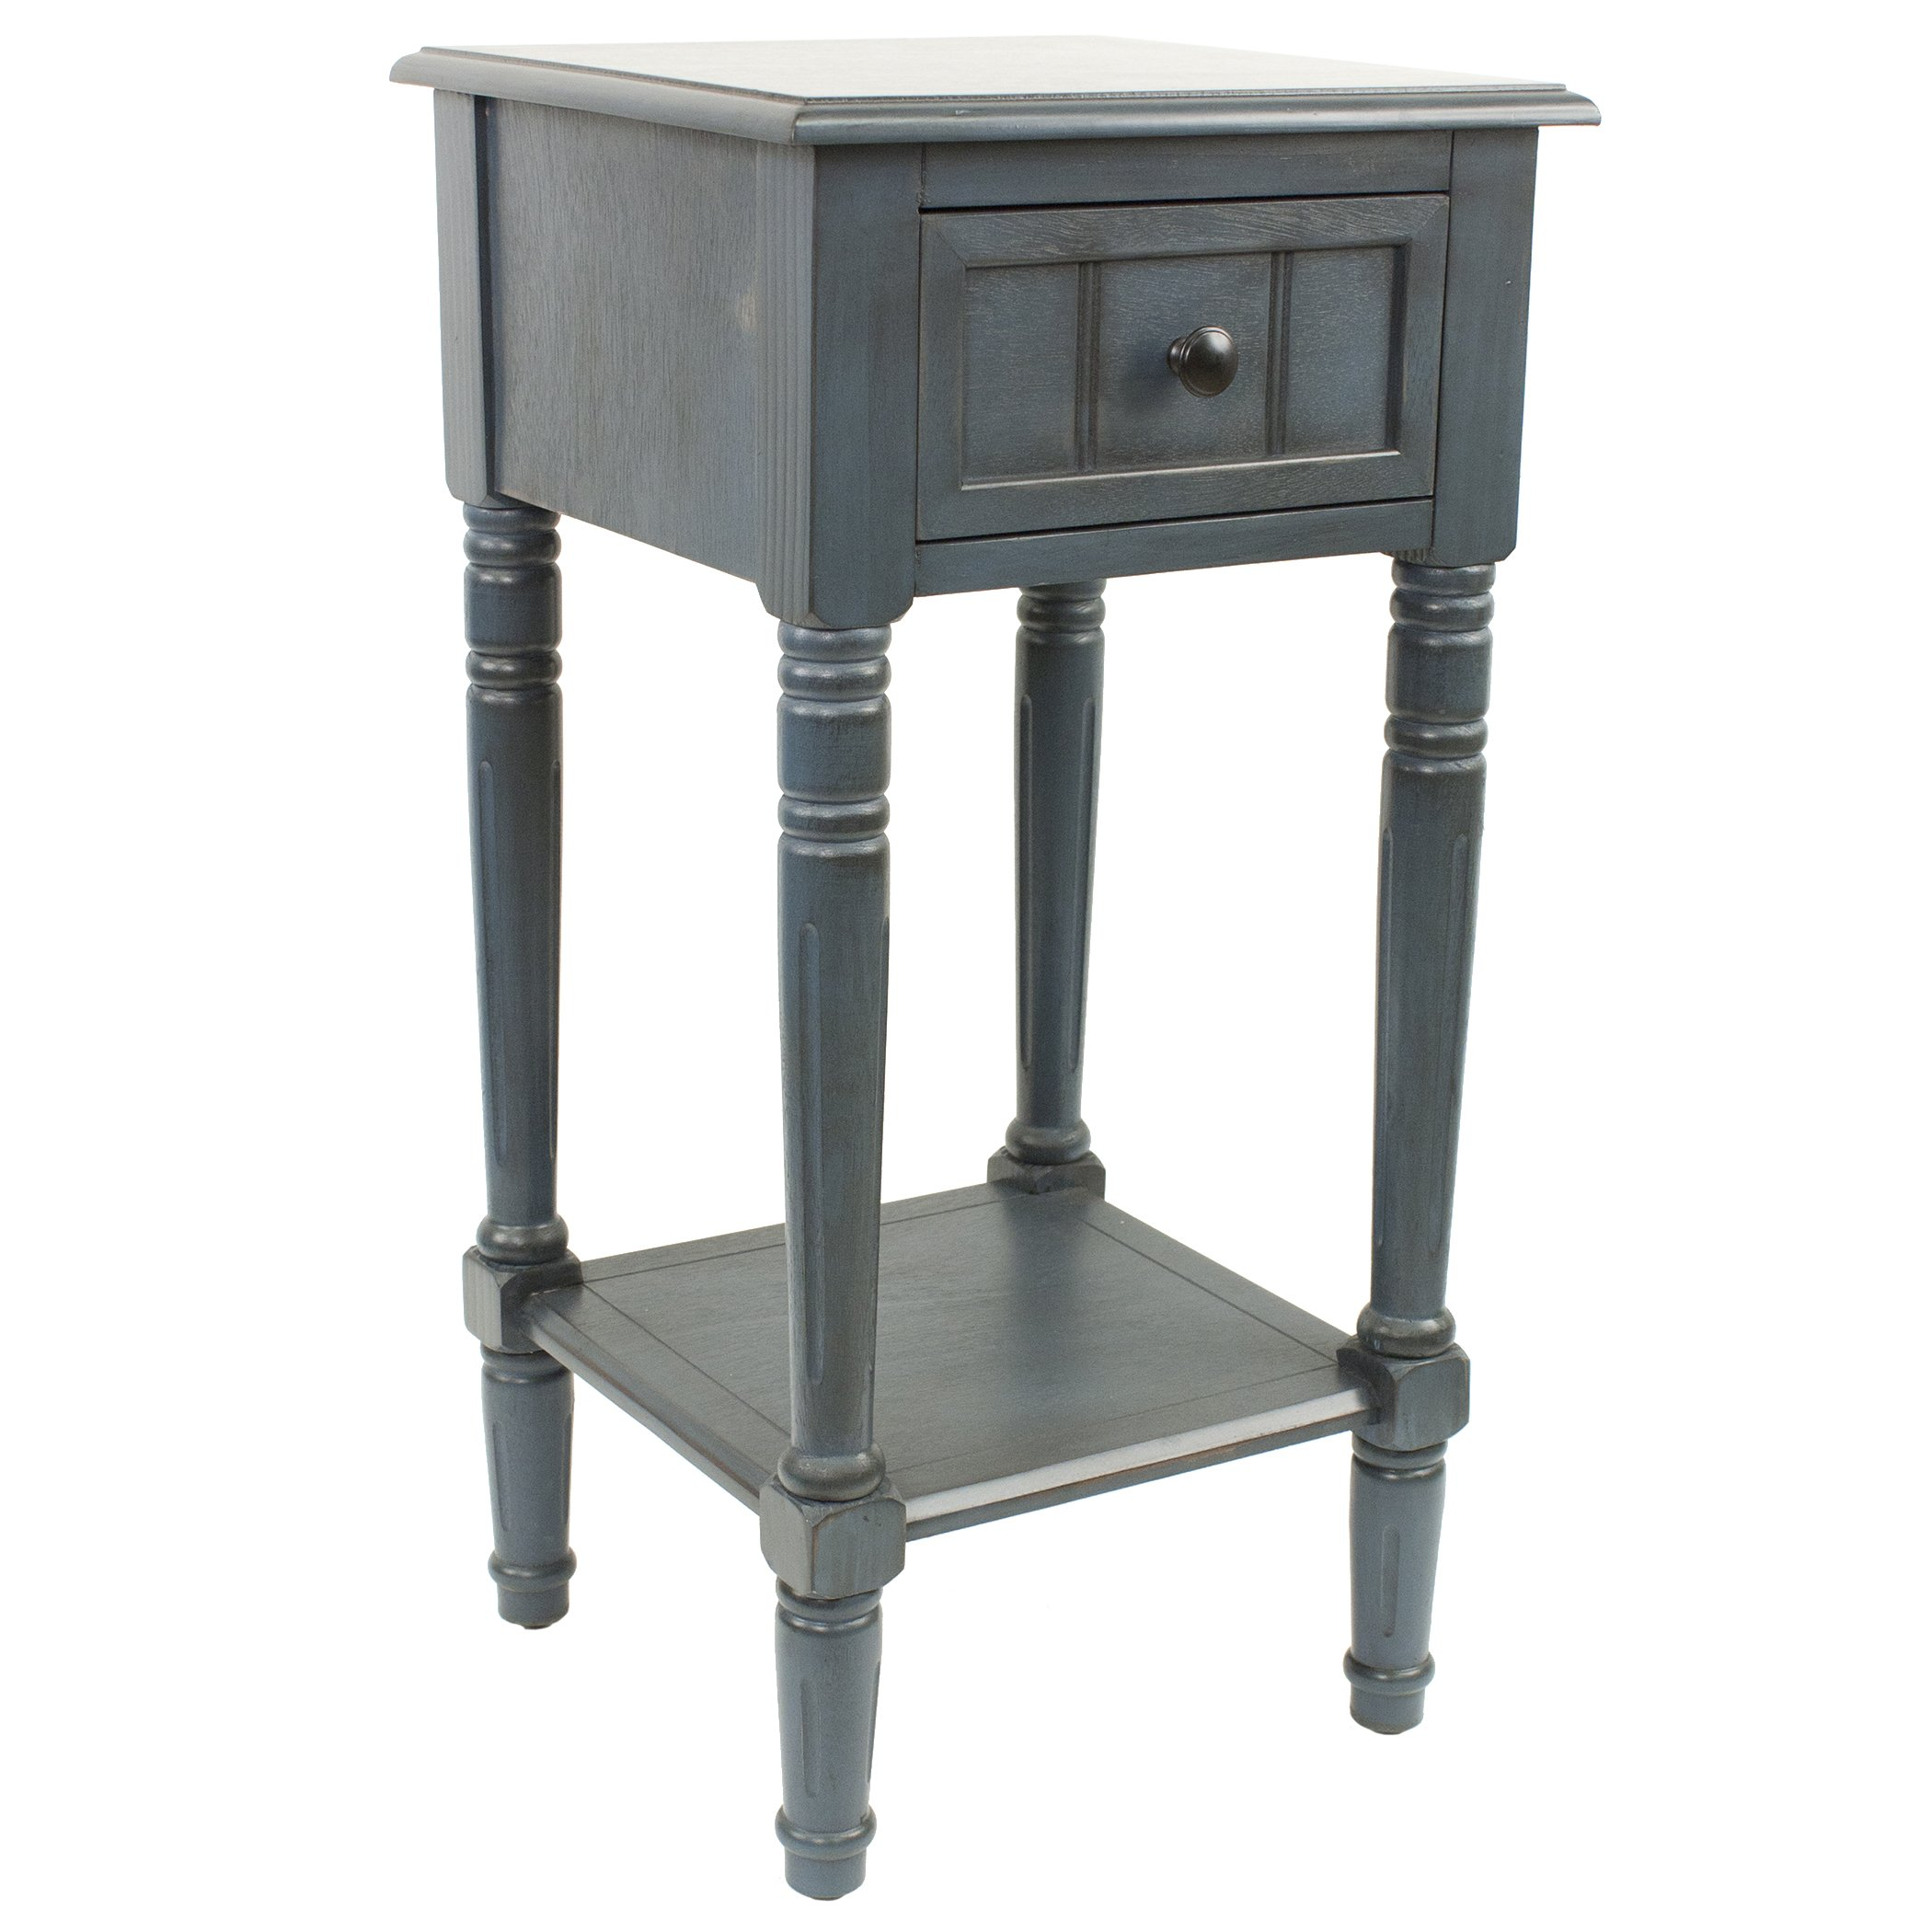 Décor Therapy FR1548 Simplify One Drawer Square Accent Table, Antique Navy